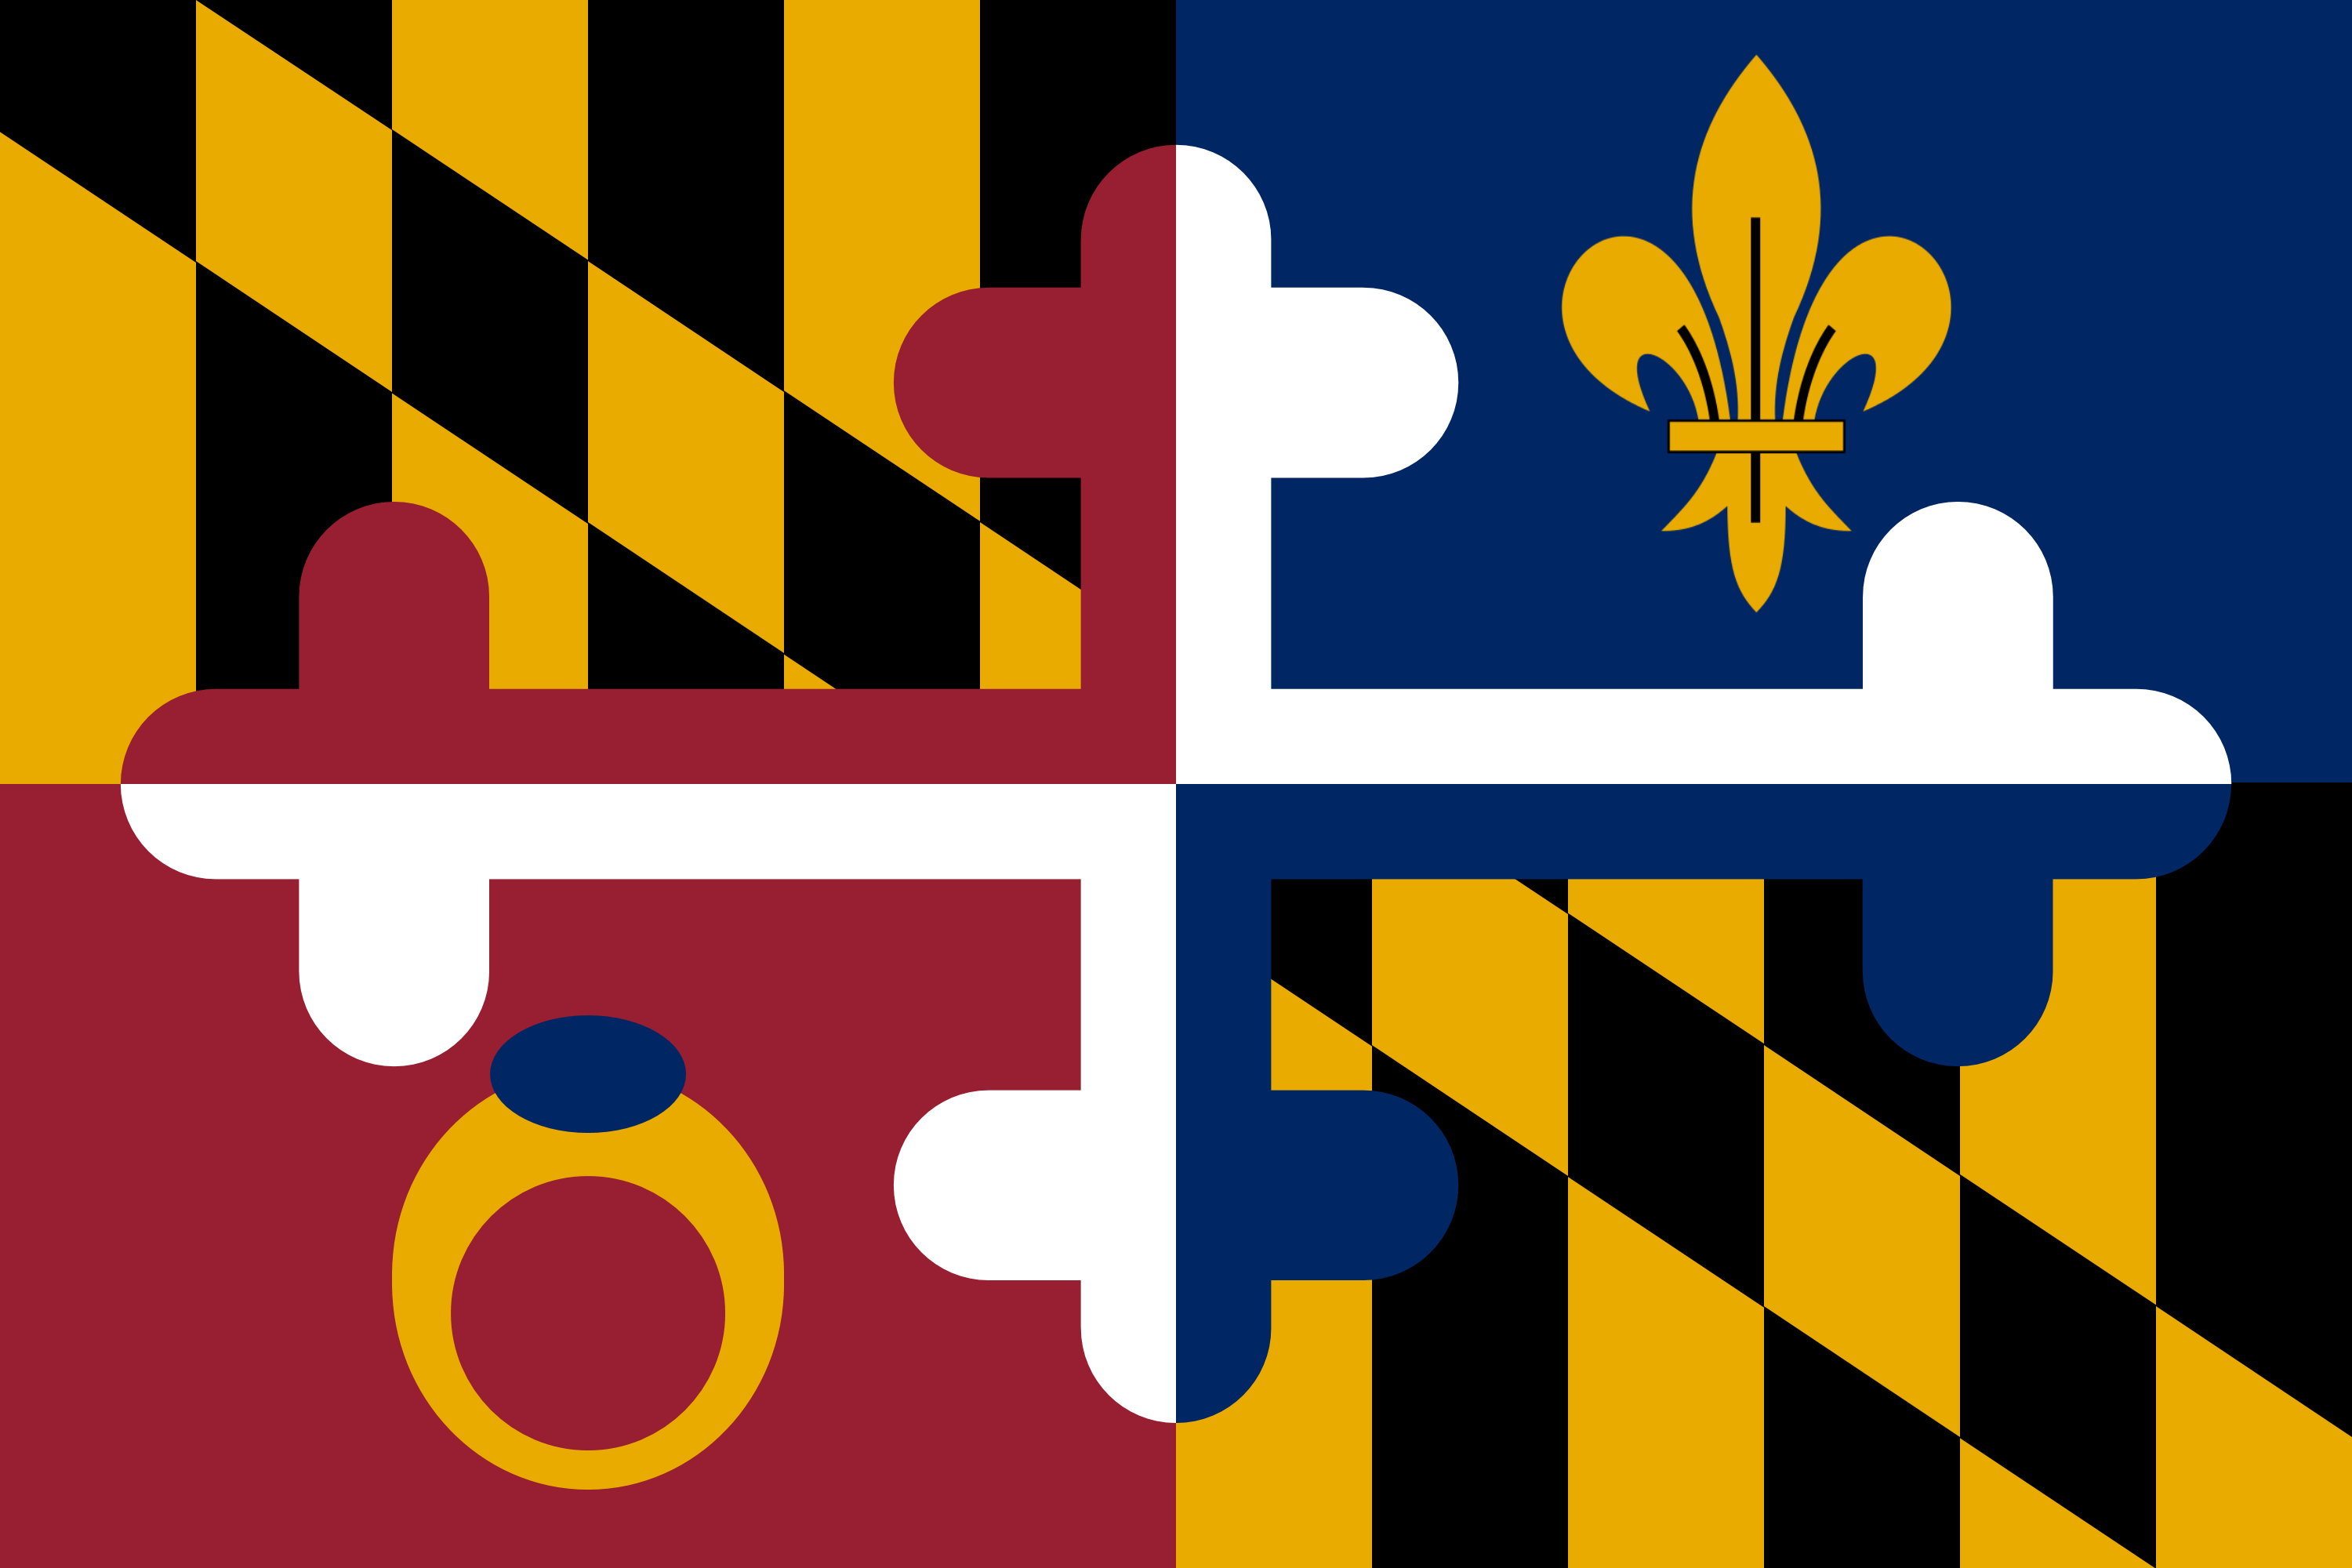 Made a mashup of my two favorite flags (Montgomery County.